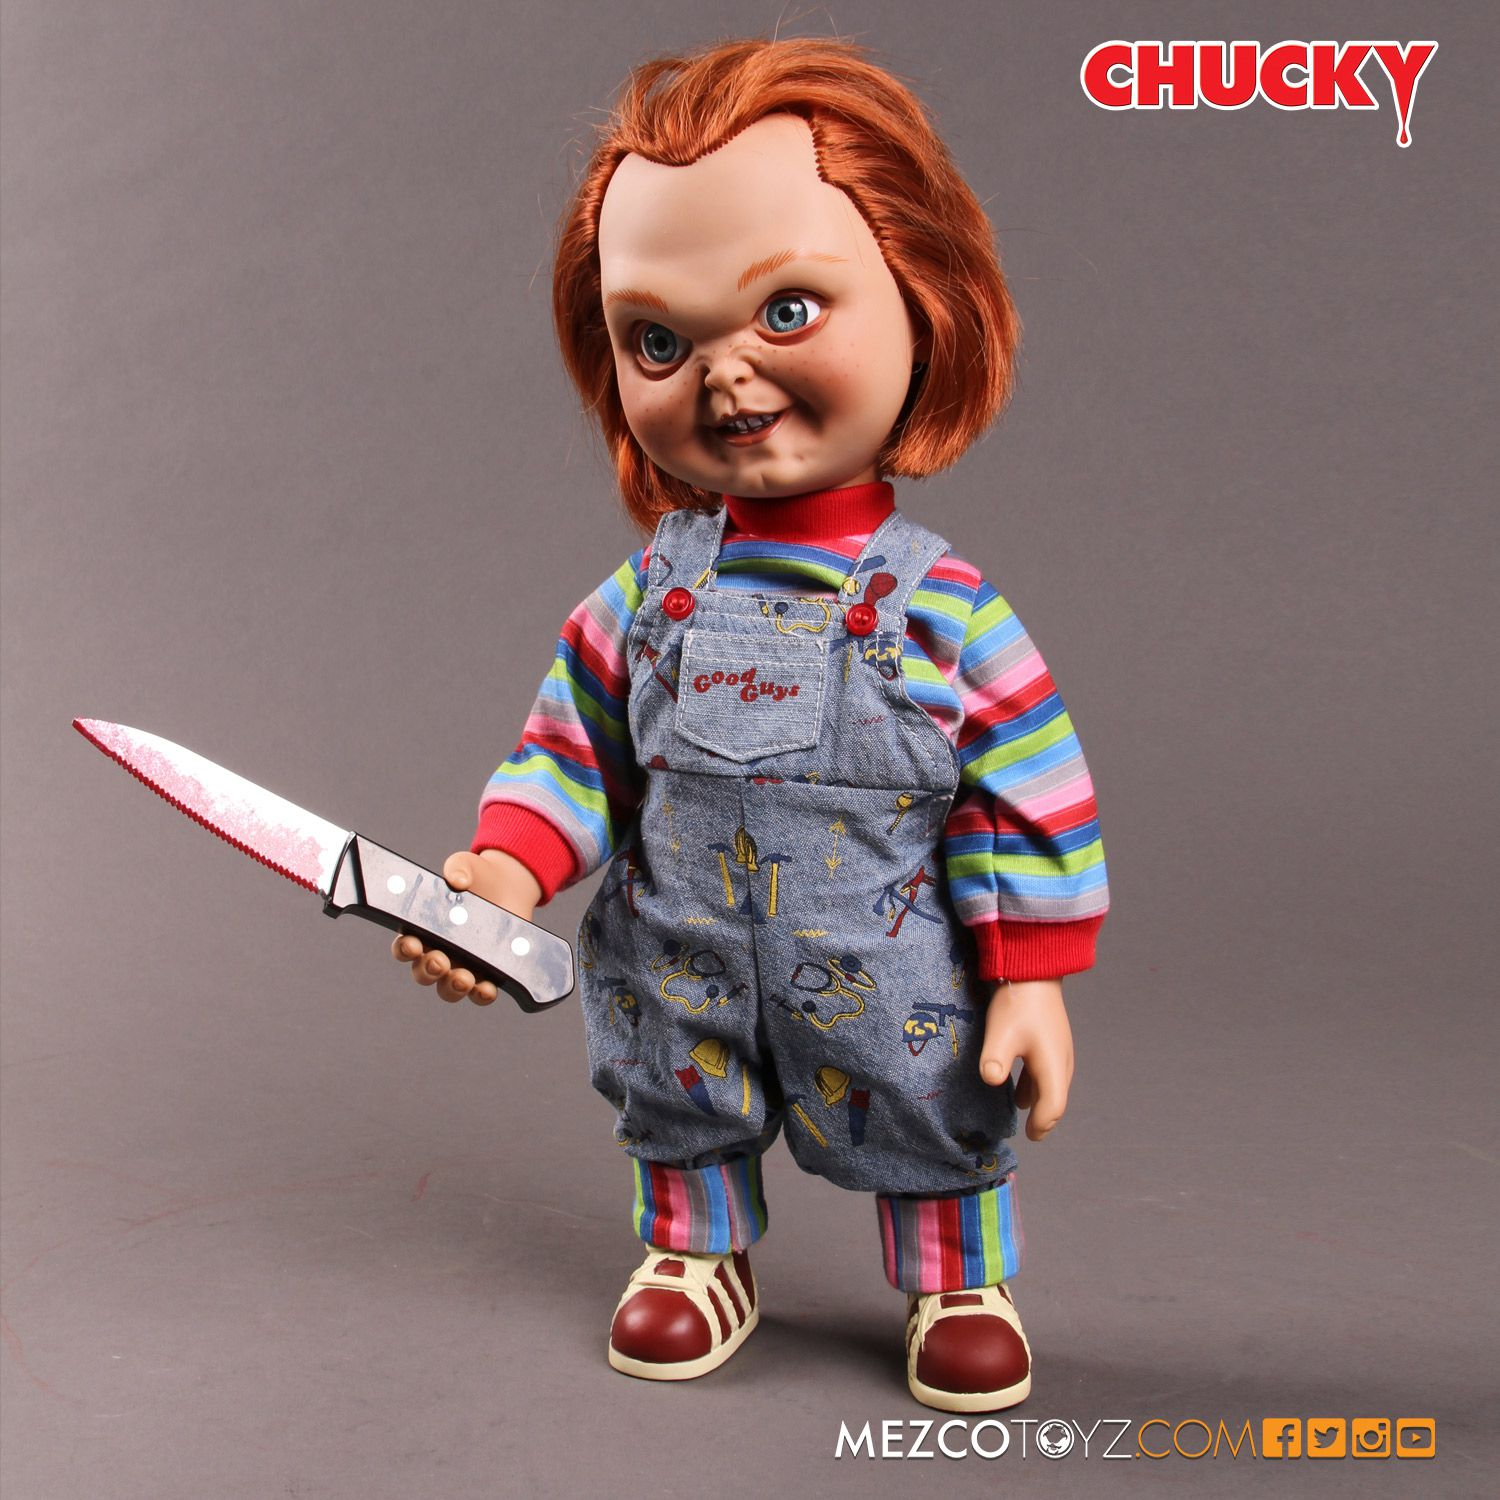 "CHILD/'S PLAY TALKING CHUCKY 15/"" SNEERING MEGA DOLL Sound Bride Mezco IN STOCK"